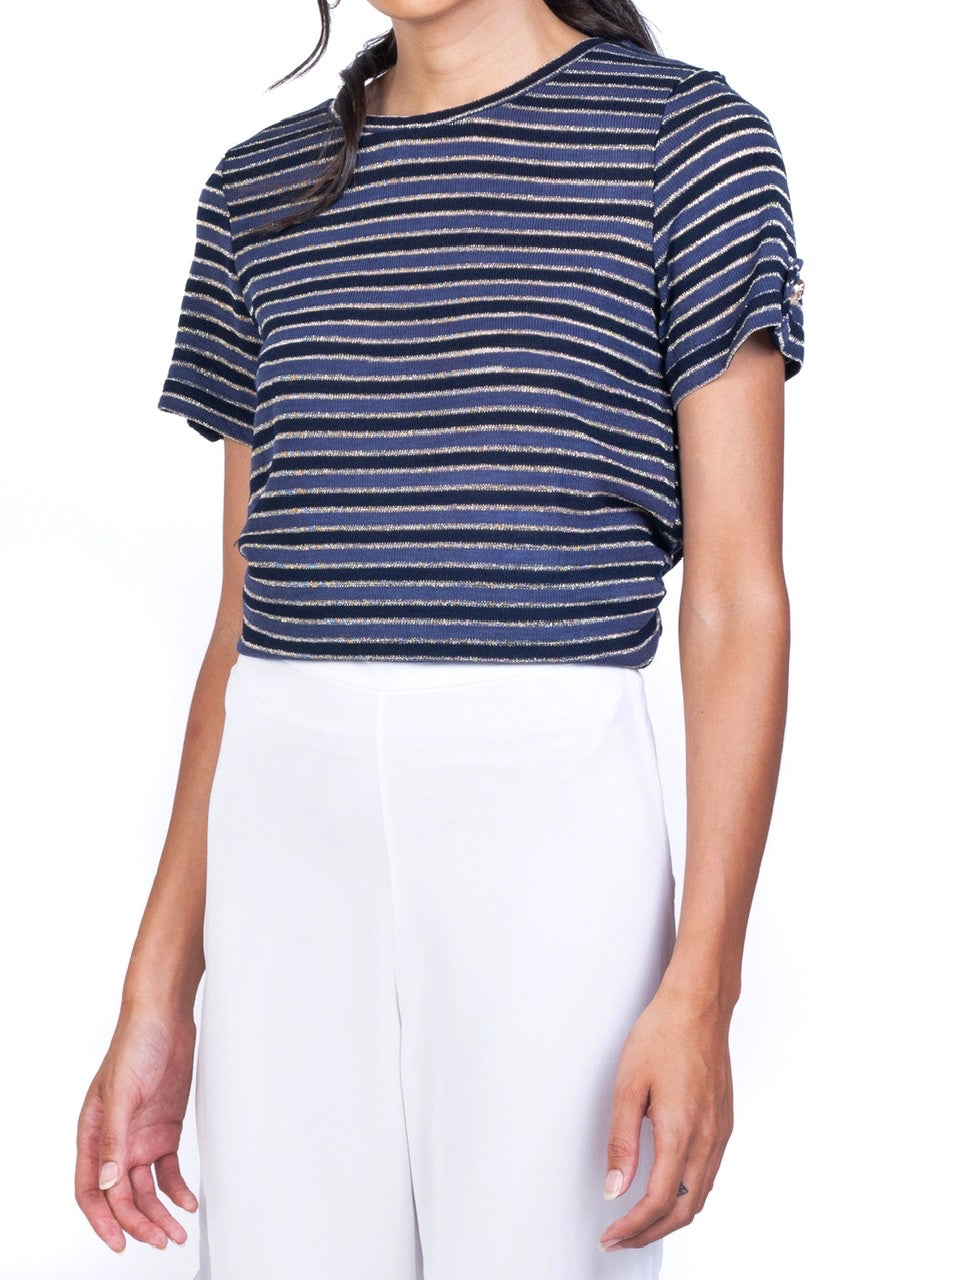 BASIC METALLIC STRIPE JERSEY TEE